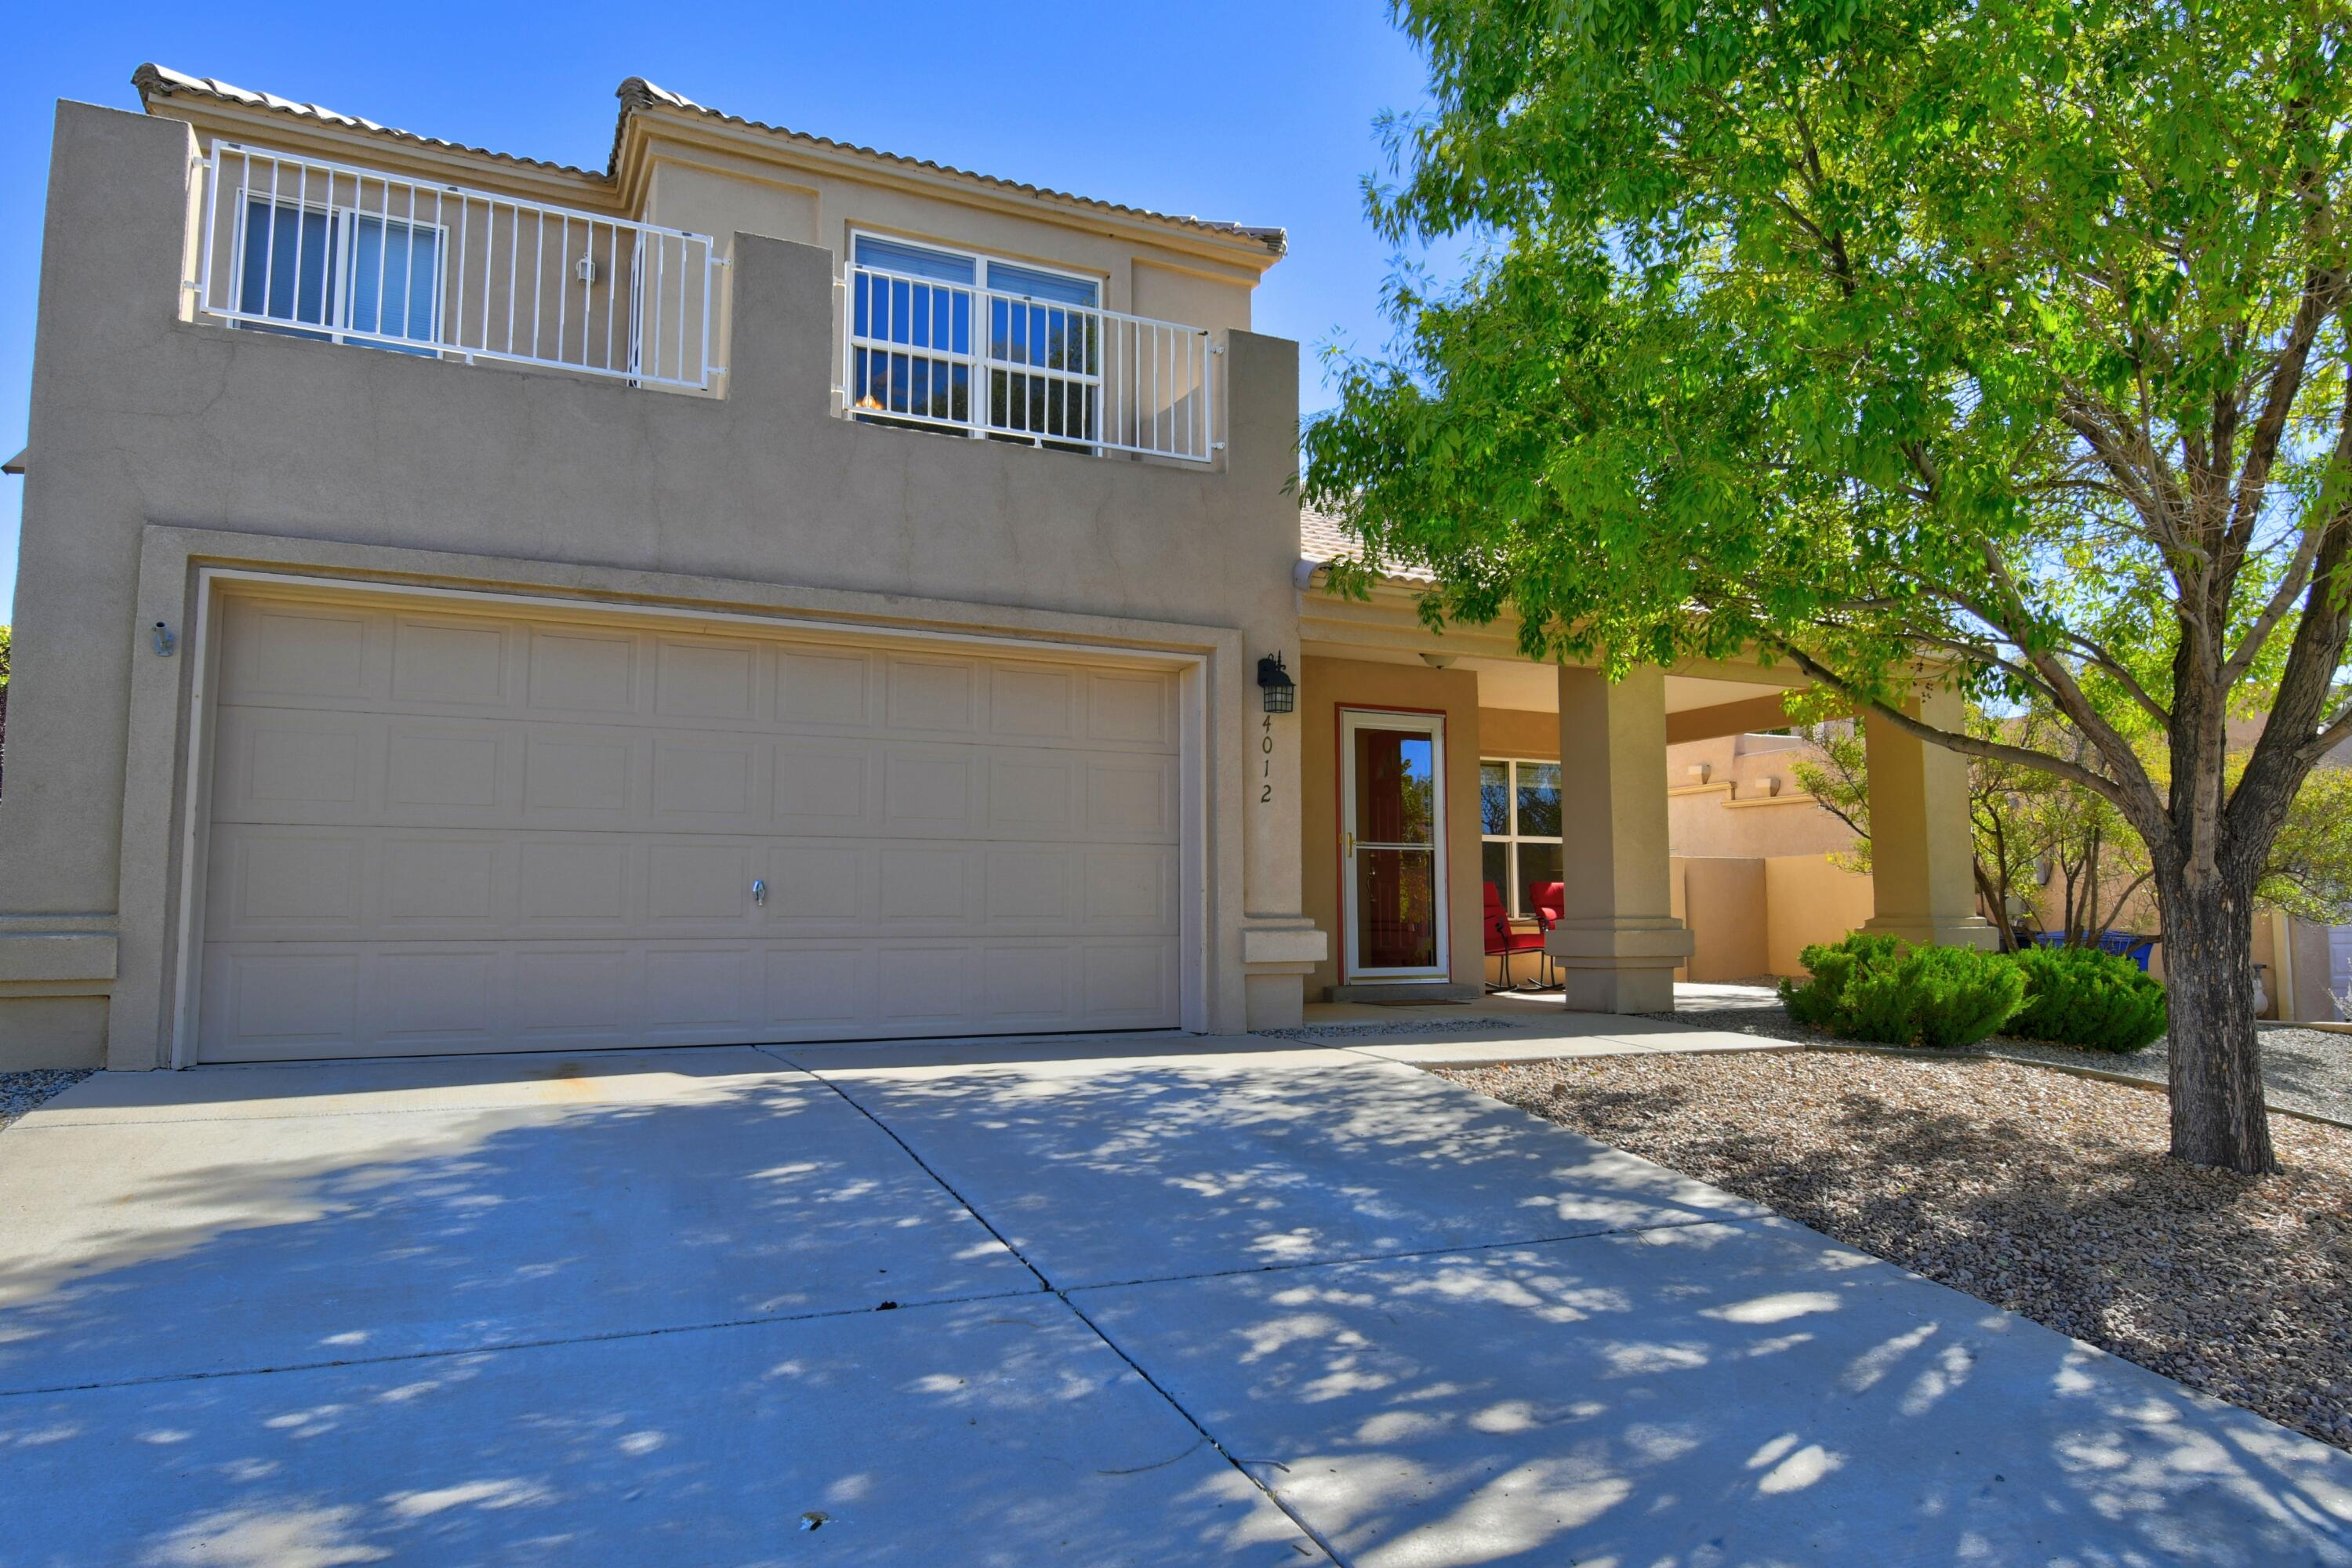 Beautiful 4 bedroom with  3 Full  Bathrooms that features 1 Bedroom and Full Bath Downstairs! Huge family room with built-in gas log fireplace! Big Country Kitchen with loads of  Cabinets,Stainless Steel Appliances and a Granite Breakfast Bar Island big enough for Gilligan!🏝 The dining room is separate and off the side of the kitchen. The fourth bedroom is off the kitchen and could be an office or guest bedroom! The master bedroom features step in shower ,Roman Tub and private balcony with views. The backyard is a private retreat with a covered porch beautiful shade trees , garden path and  storage building! Pitched tiled roof . And two car garage!